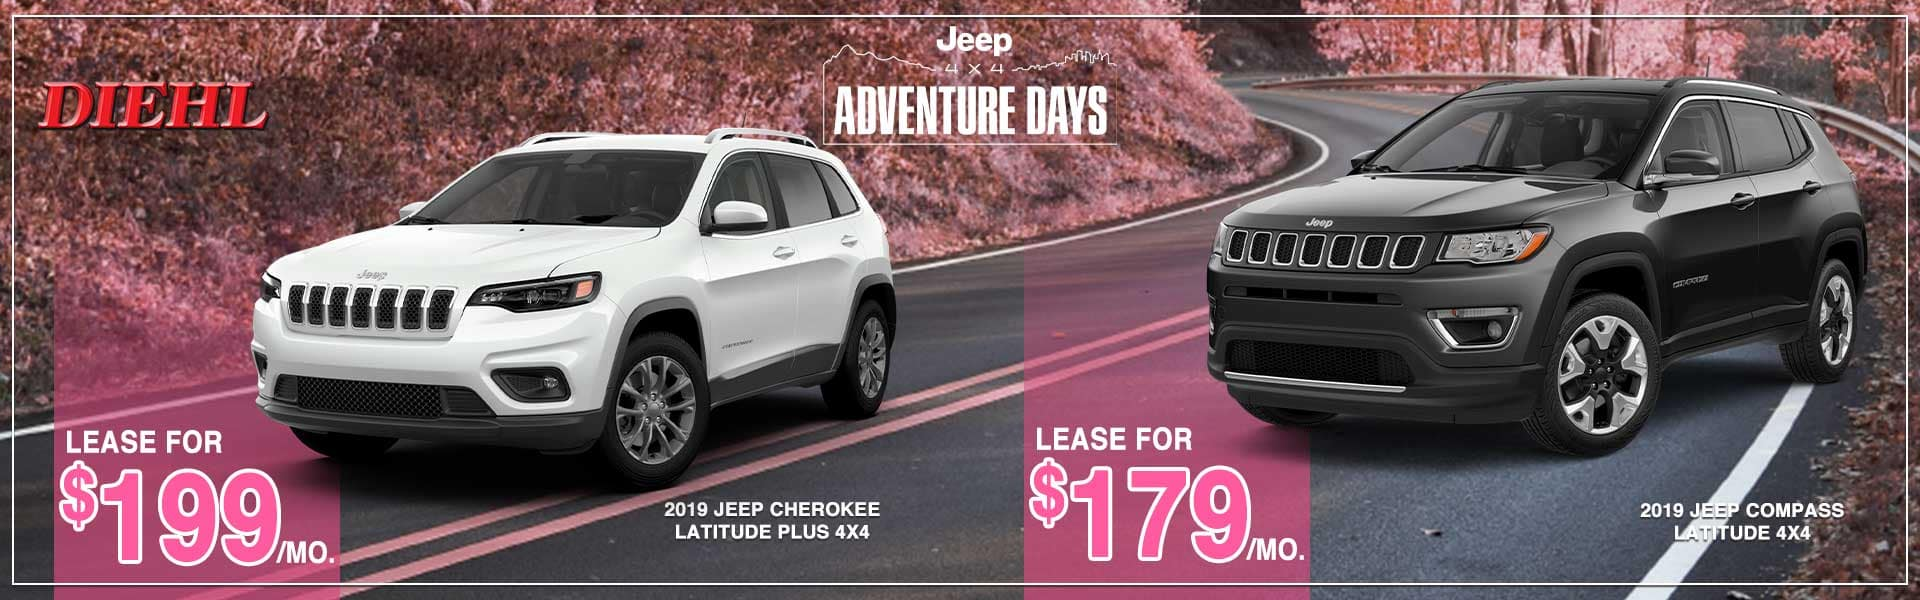 diehl auto Dodge power dollars jeep adventure days ram power days dodge lease special ram lease special Chrysler lease special jeep lease special glimmer of hope breast cancer awareness cars for a cause diehl Robinson PA mopar